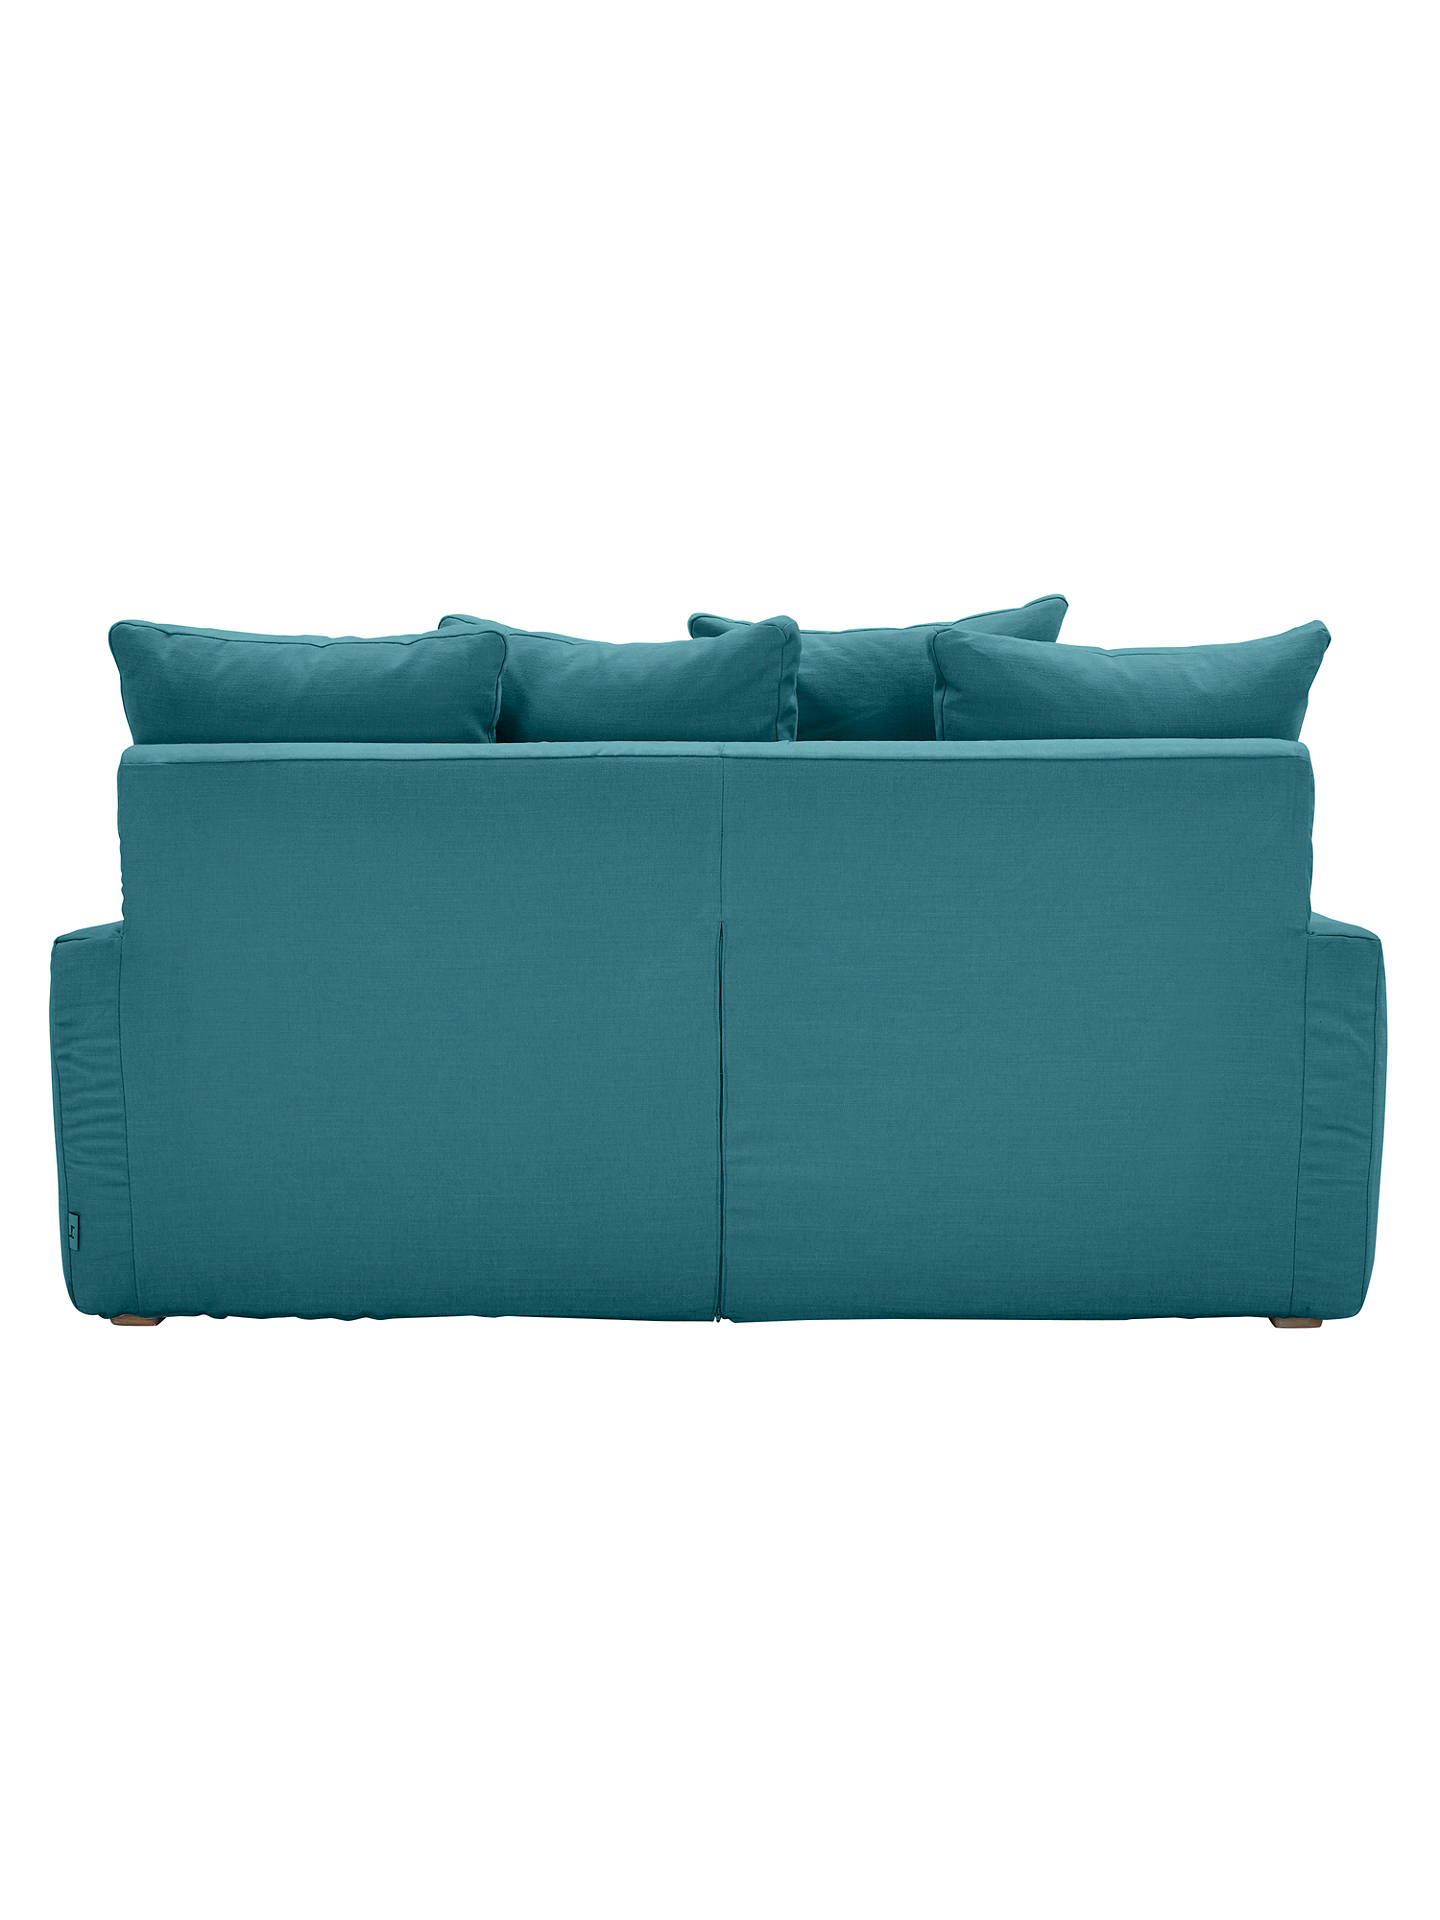 Buy Floppy Jo Medium 2 Seater Sofa by Loaf at John Lewis, Brushed Cotton Teal Online at johnlewis.com